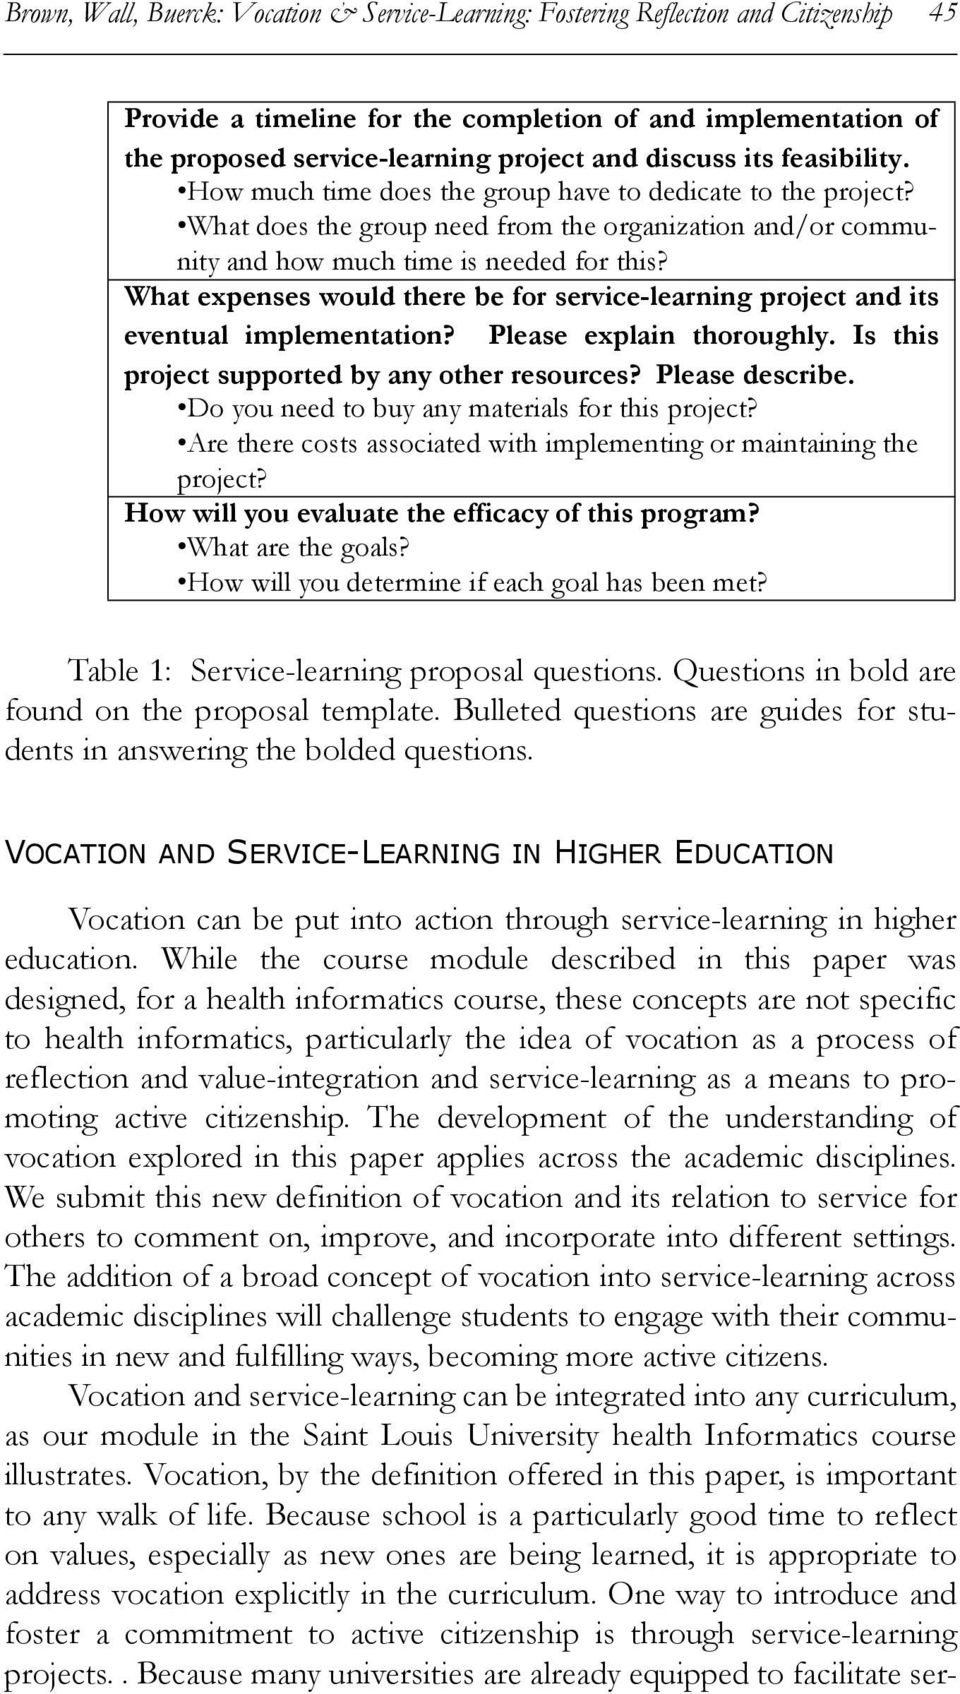 What expenses would there be for service-learning project and its eventual implementation? Please explain thoroughly. Is this project supported by any other resources? Please describe.